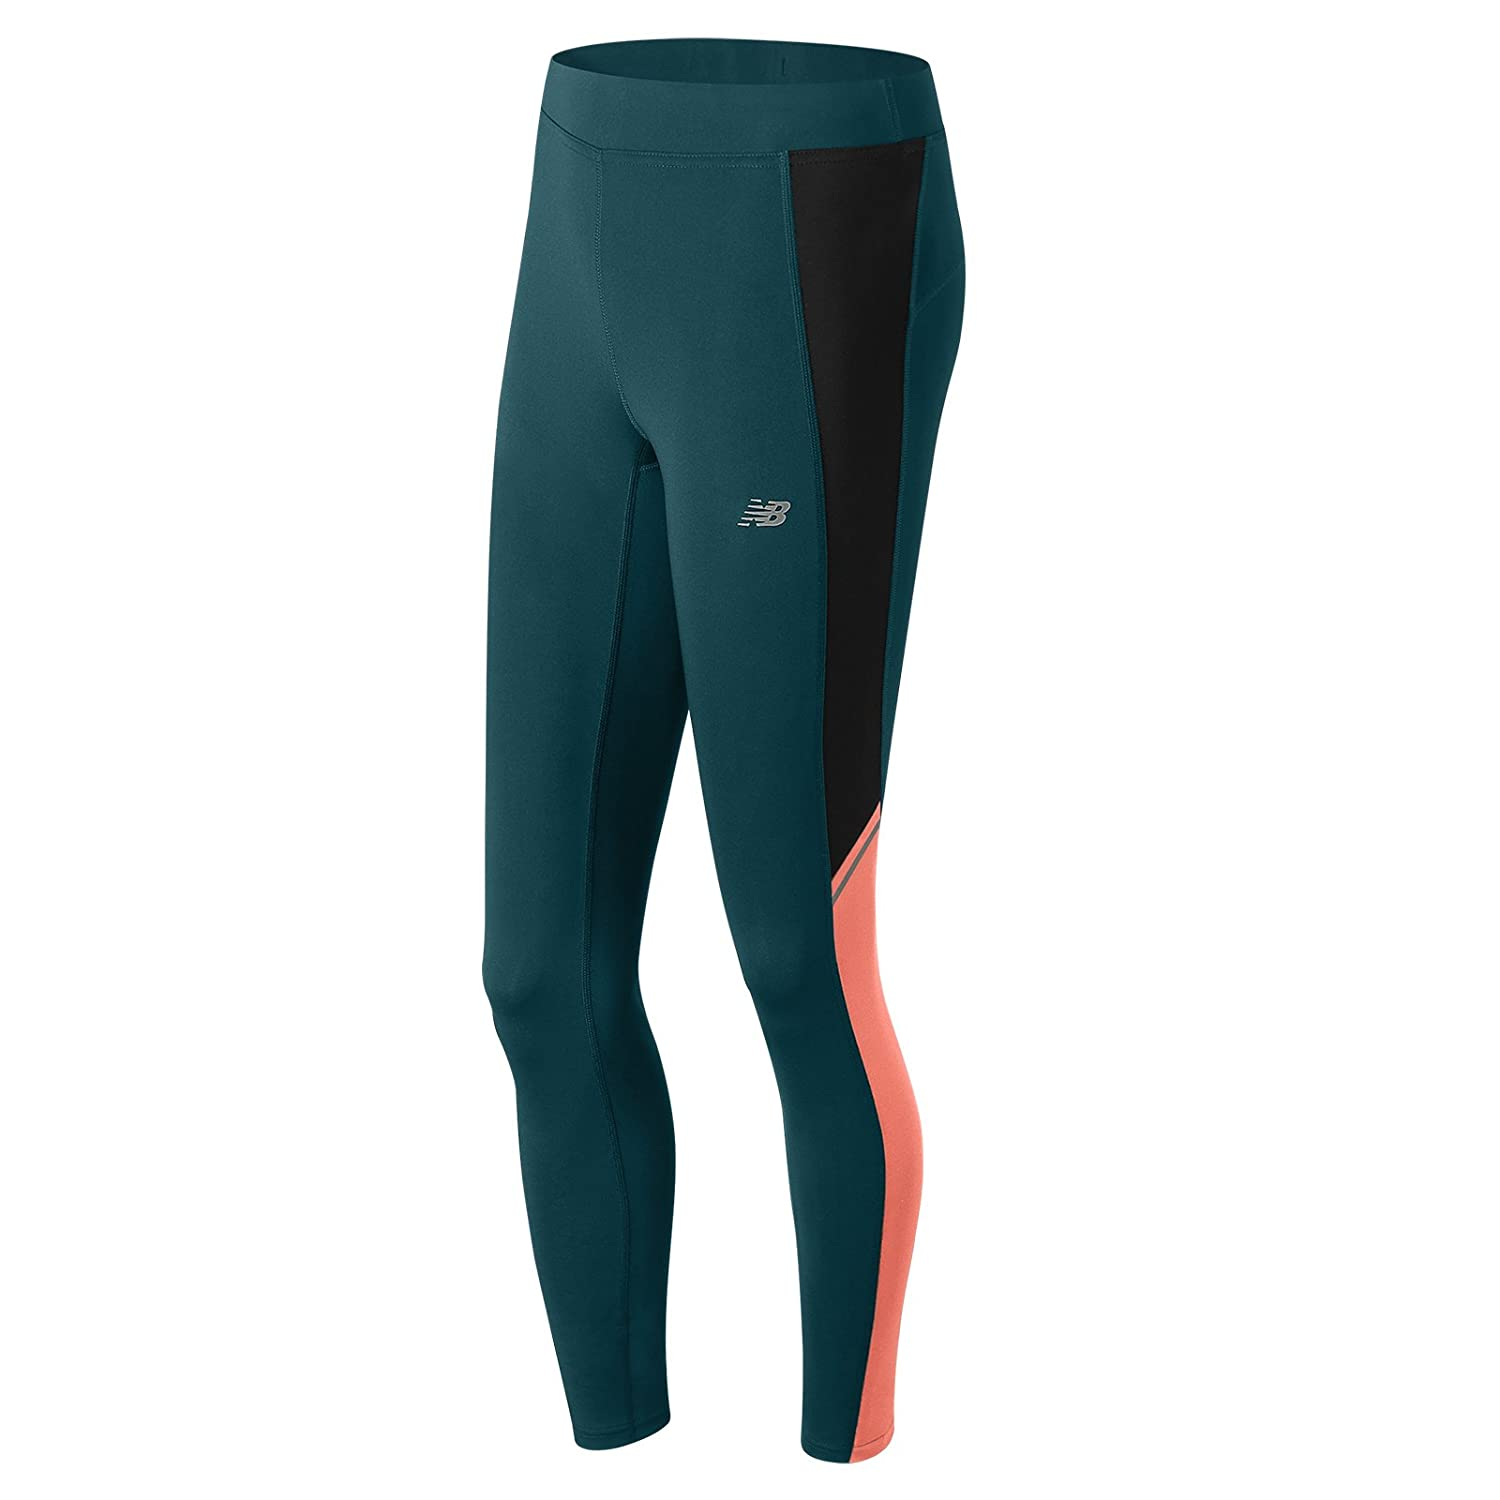 93434c0f838d2 Amazon.com : New Balance Women's Accelerate Running and Workout Tight :  Clothing